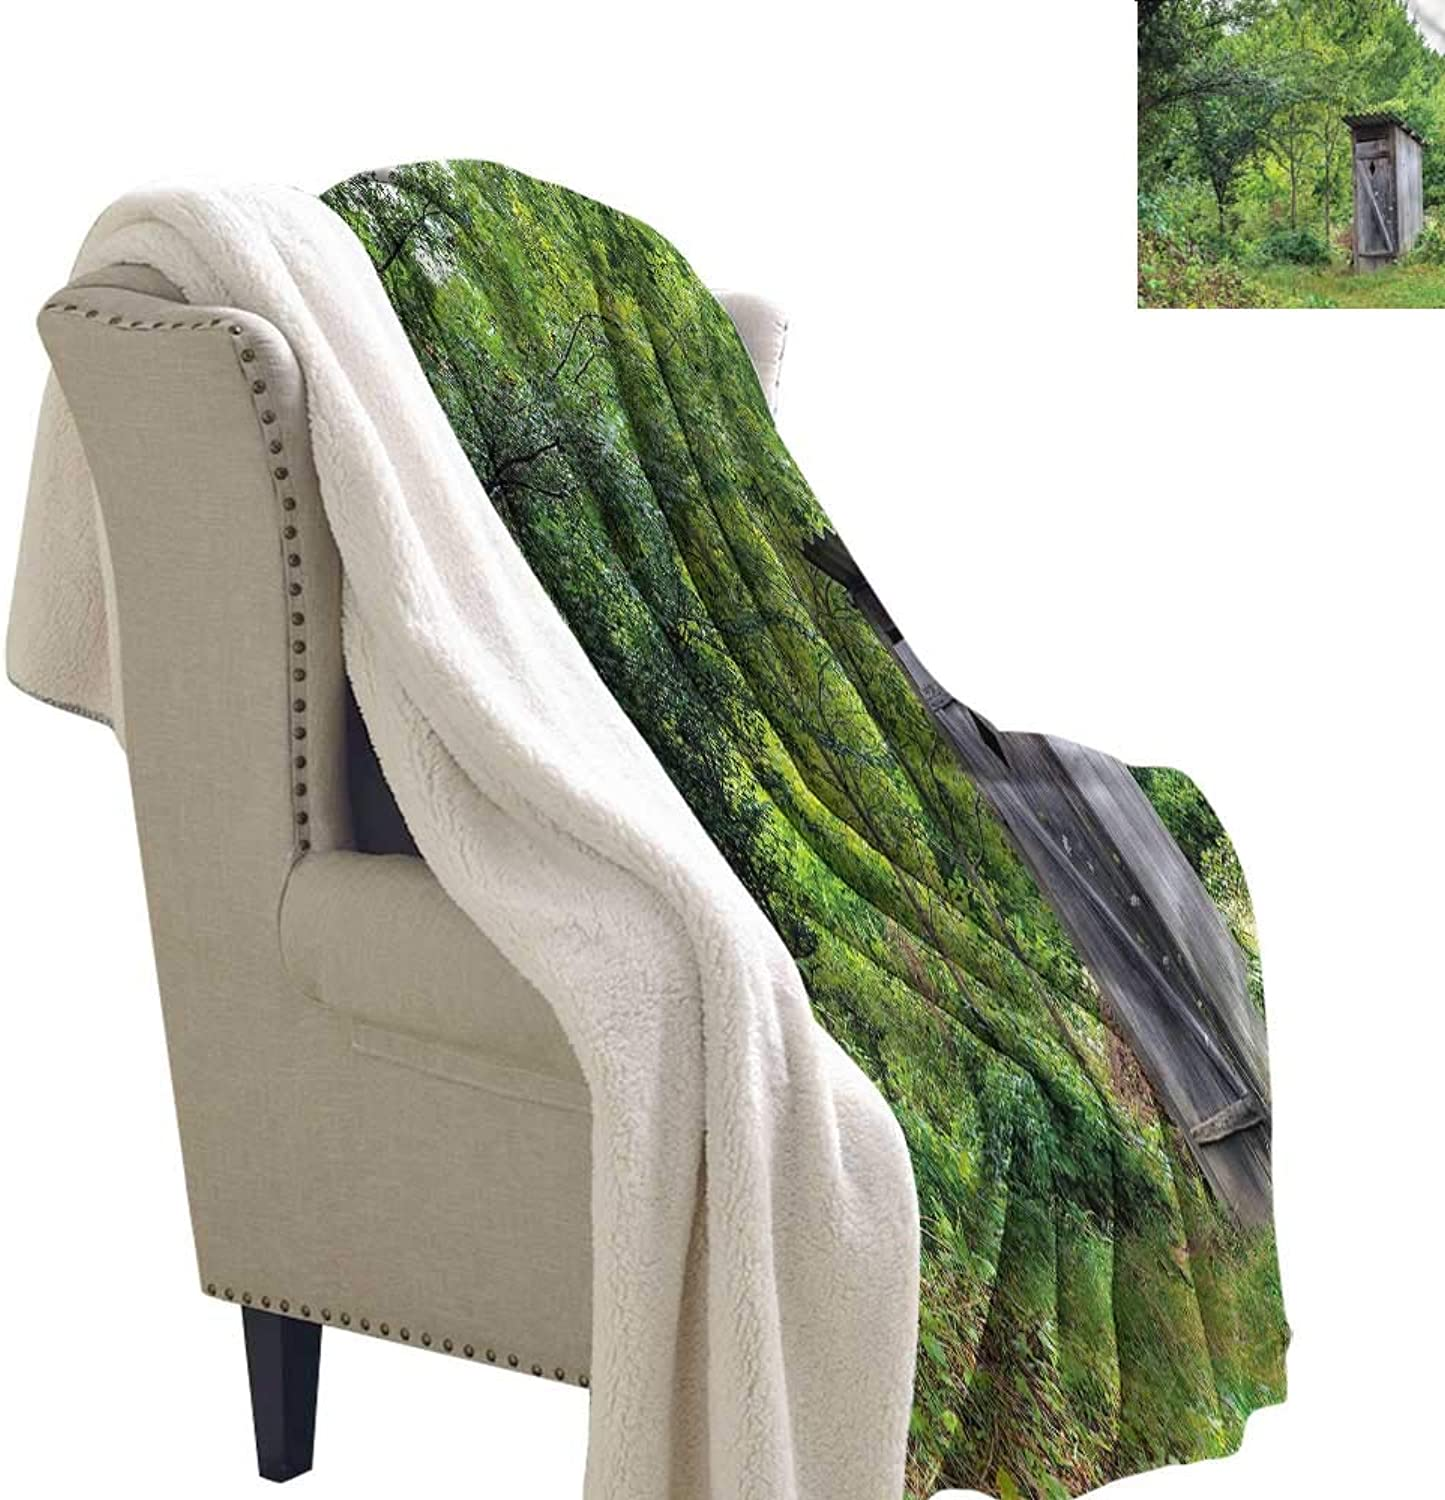 Alexandear Outhouse Light Thermal Blanket Spring Forest Worn Hut Print Summer Quilt Comforter 60x32 Inch